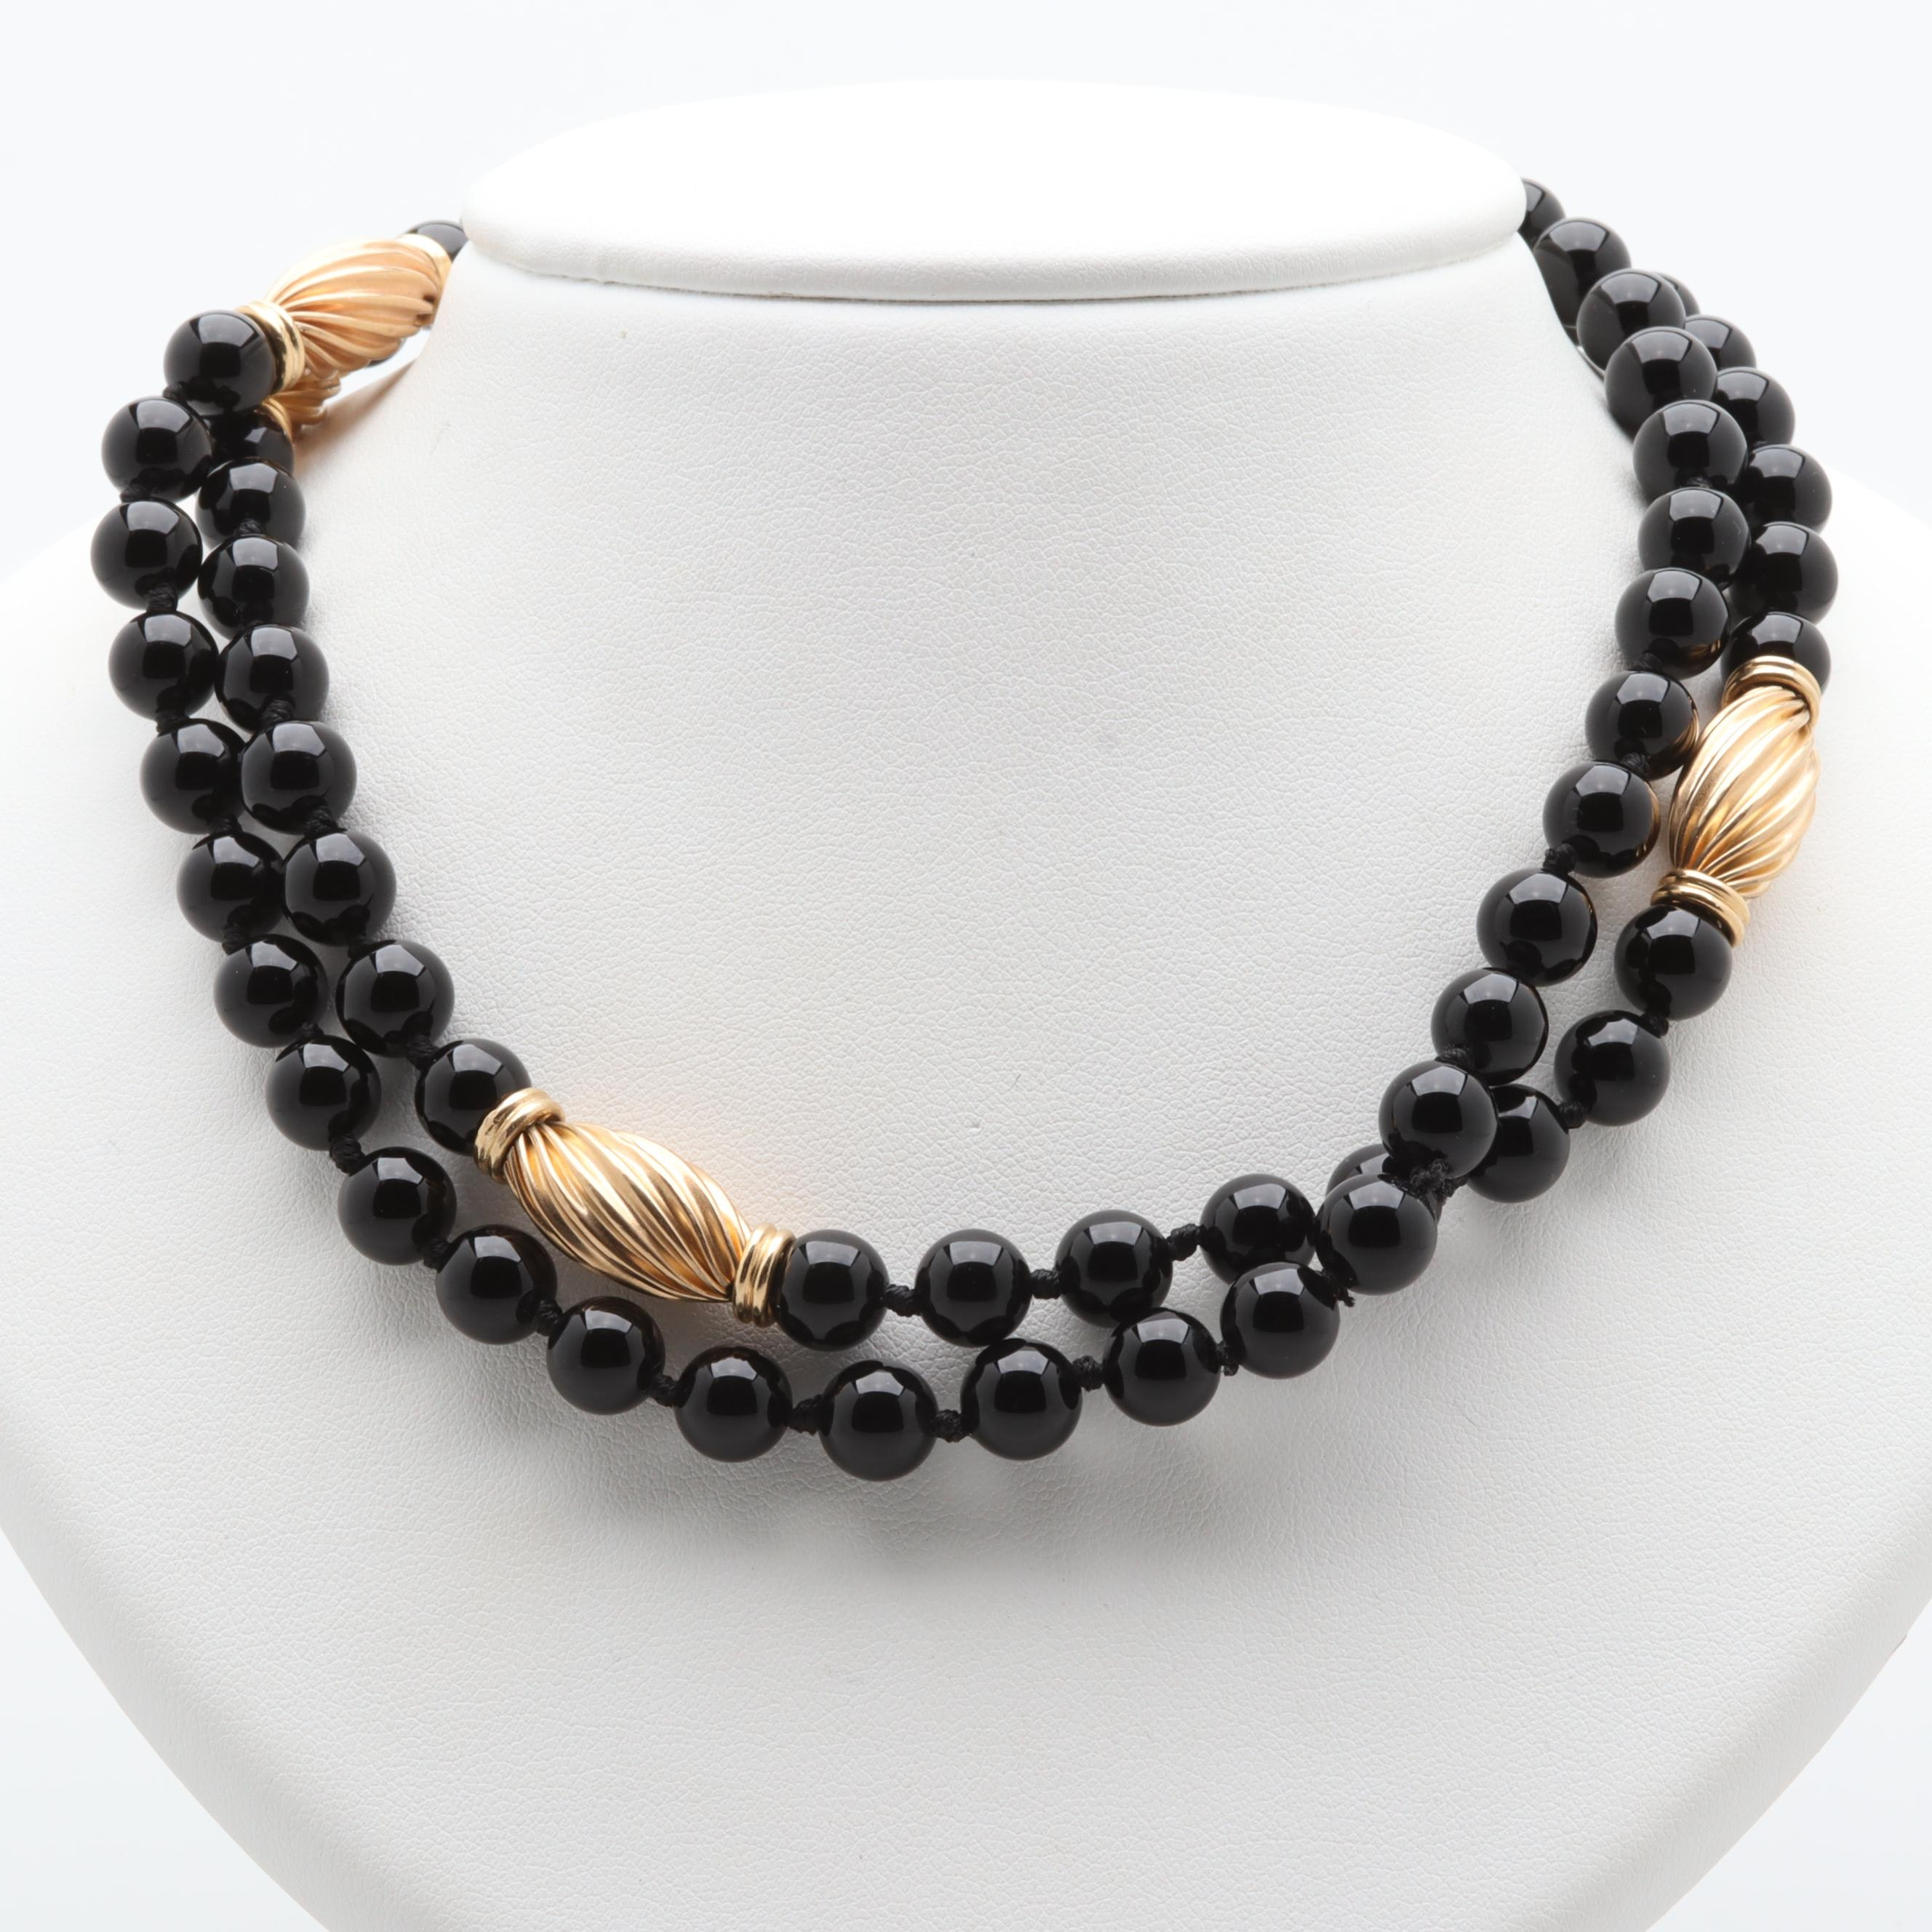 14K Yellow Gold Black Onyx Necklace